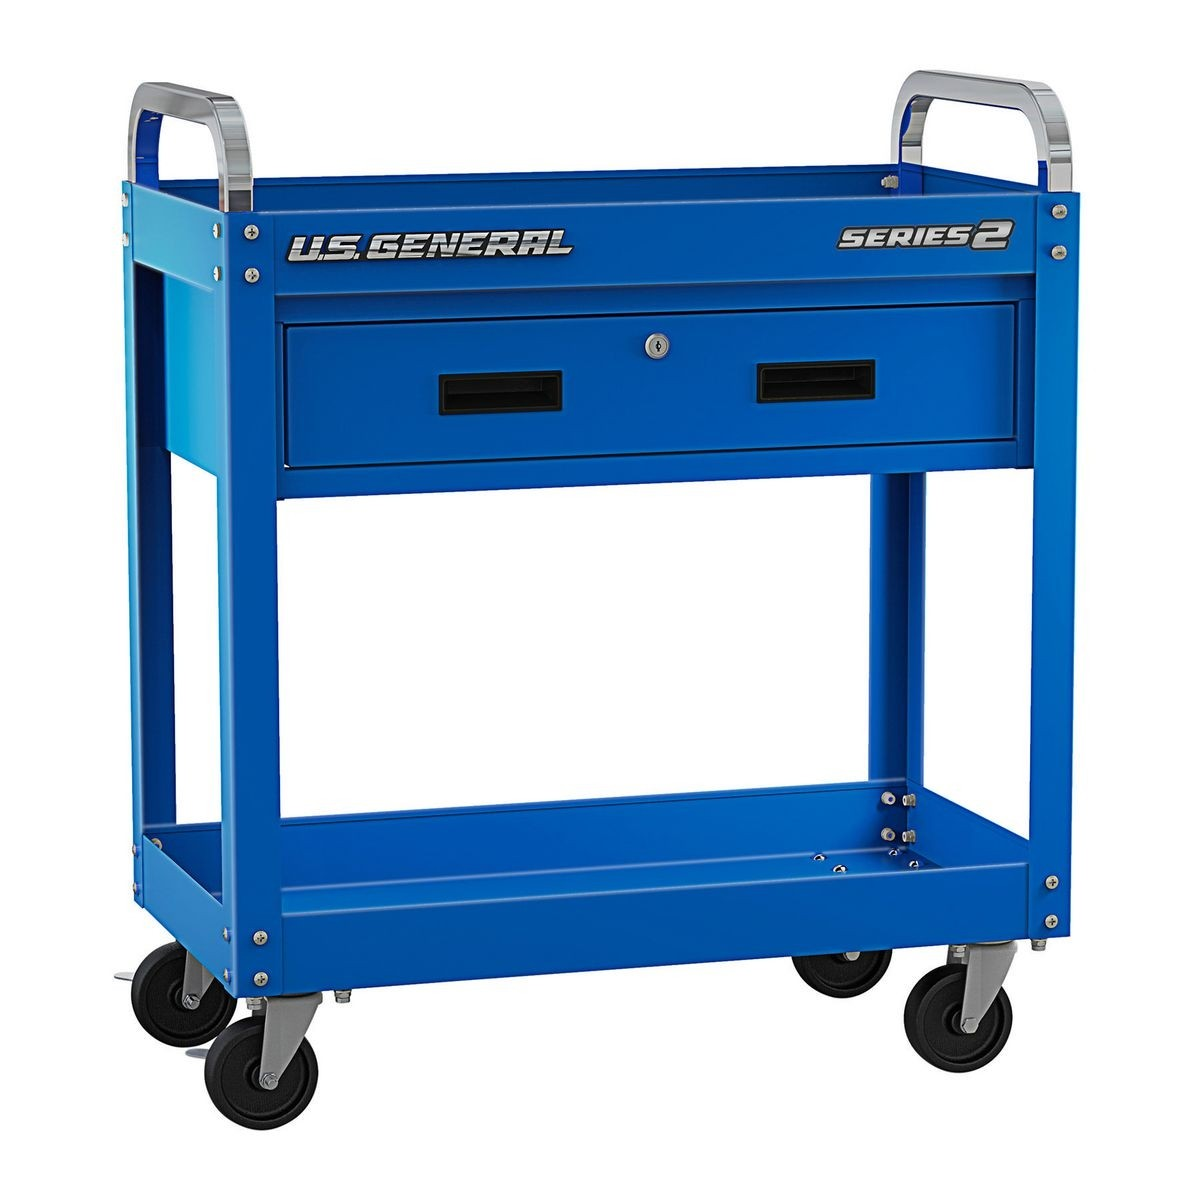 U.S. GENERAL 30 In. Service Cart With Drawer – Blue – Item 56606